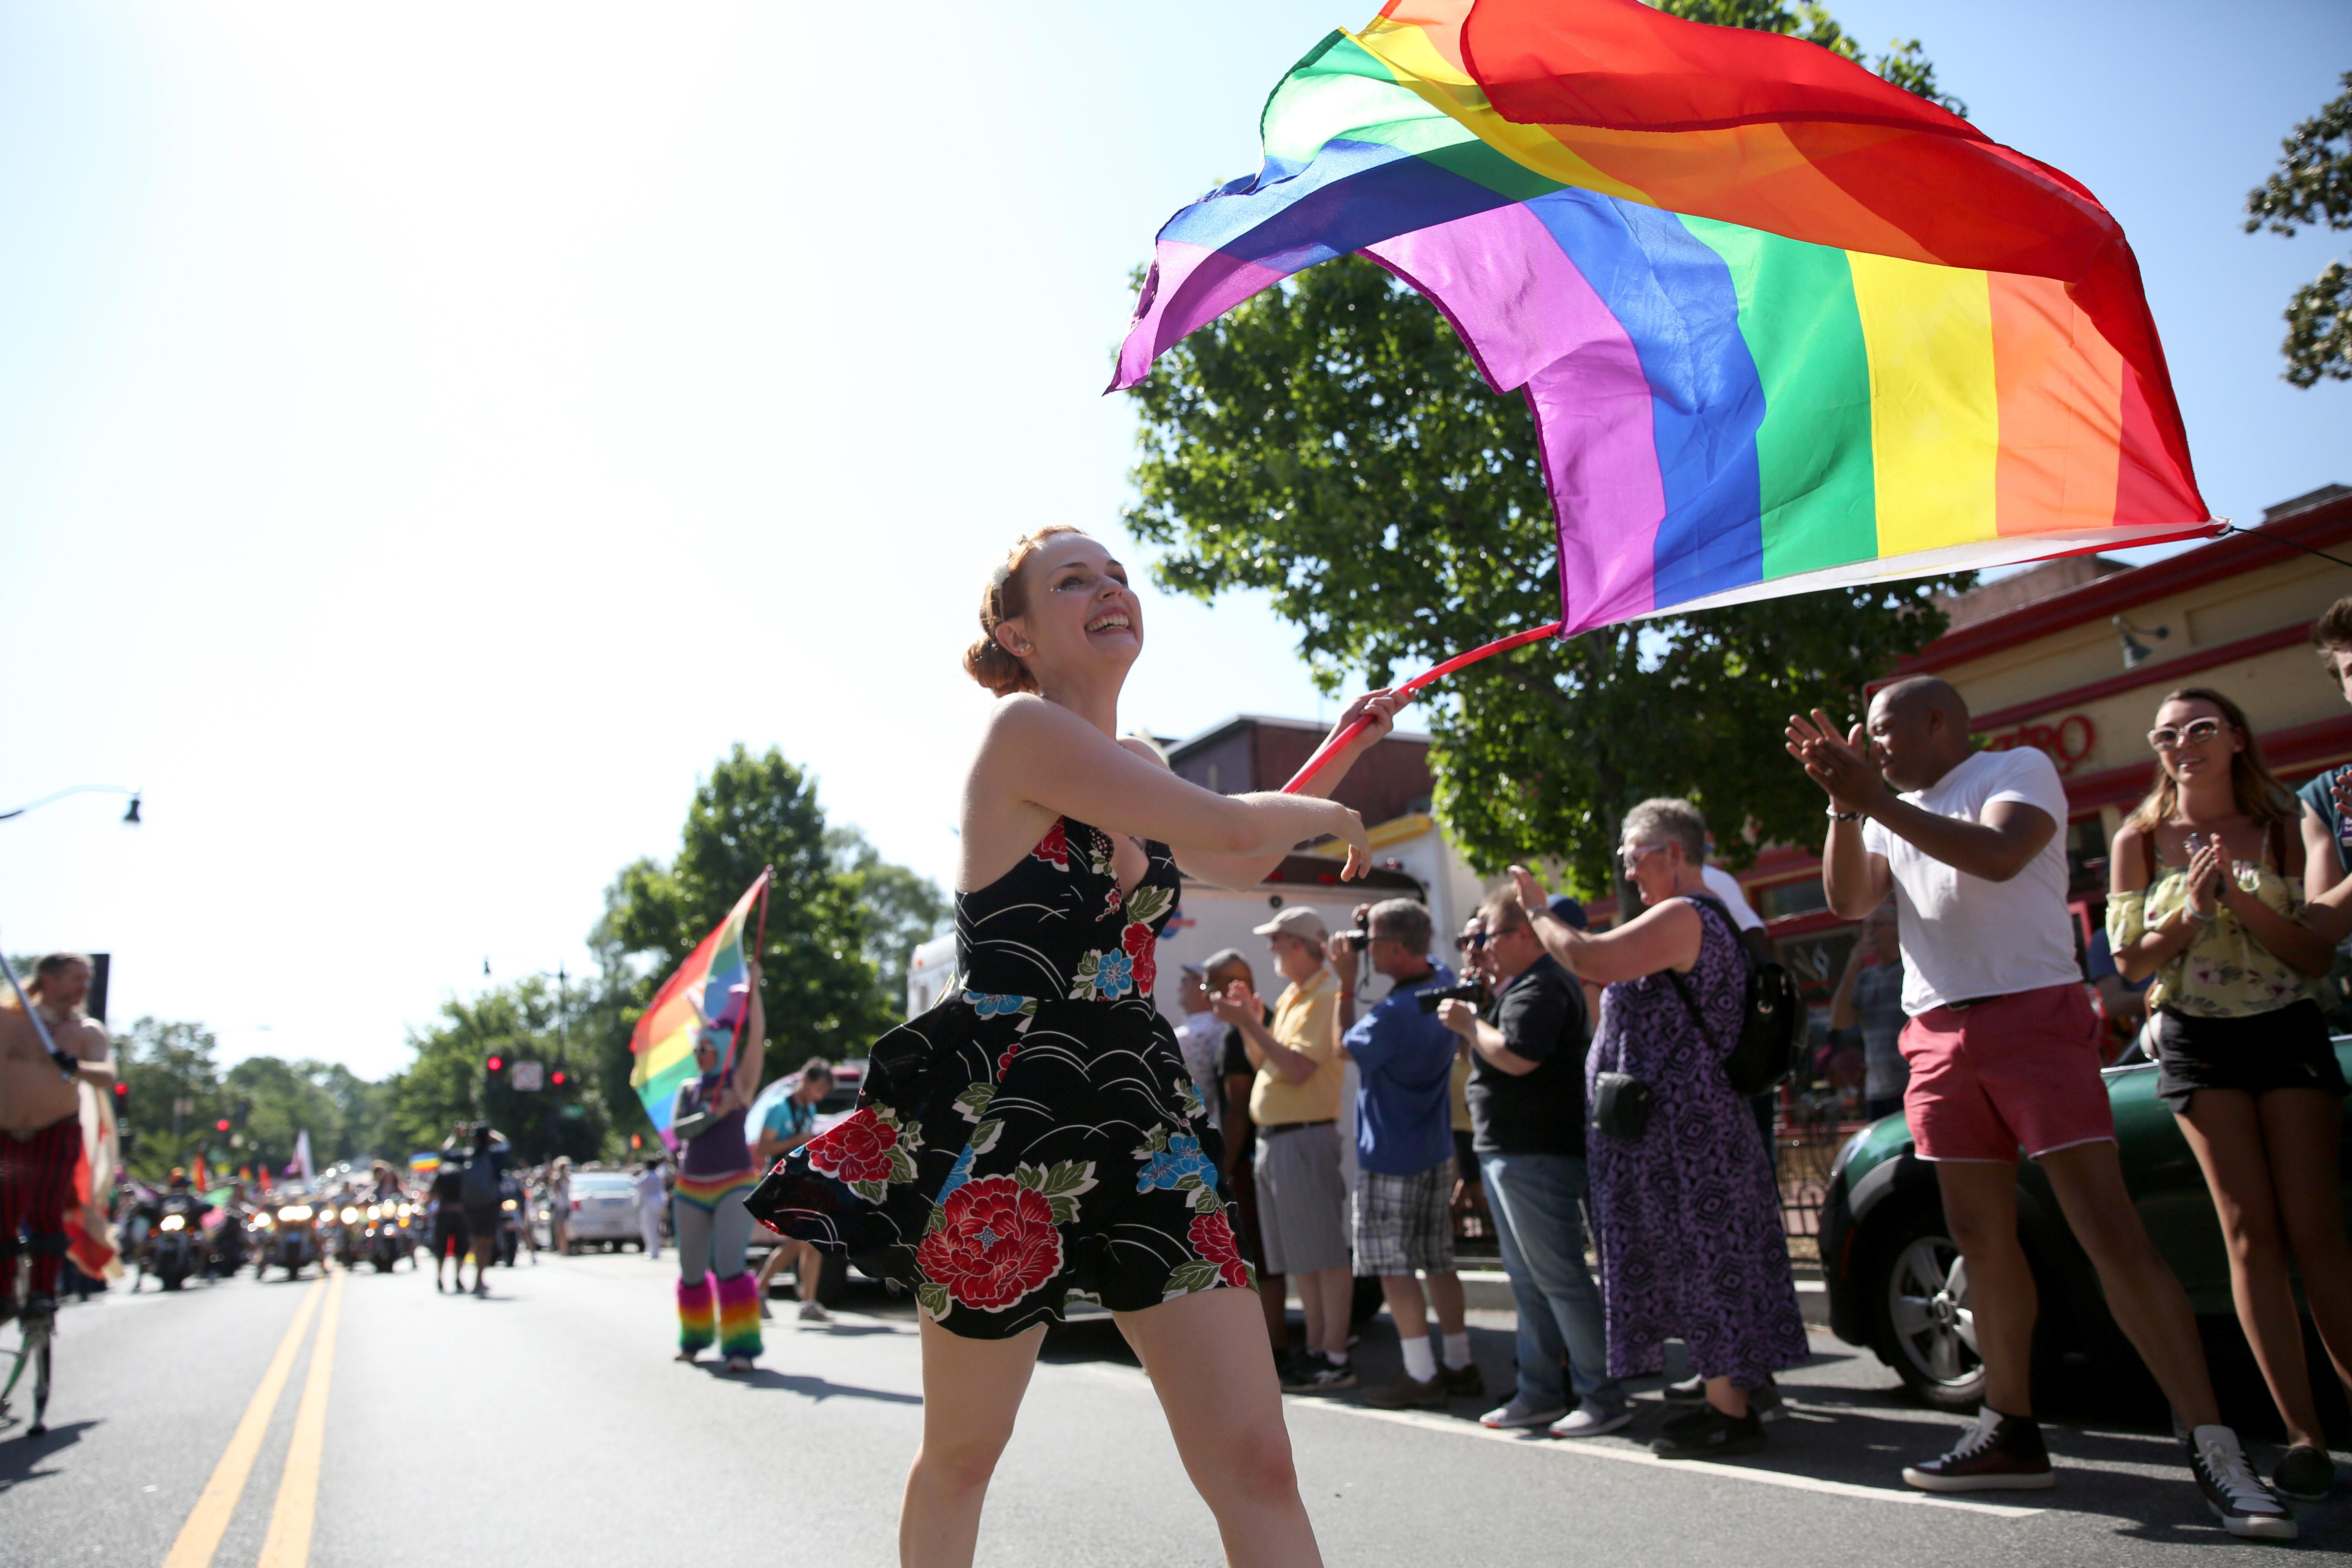 Rainbows flooded the streets of D.C. for the annual LGBTQ pride parade, which celebrates identity and love while honoring the community's history of resistance. (Amanda Andrade-Rhoades/DC Refined)